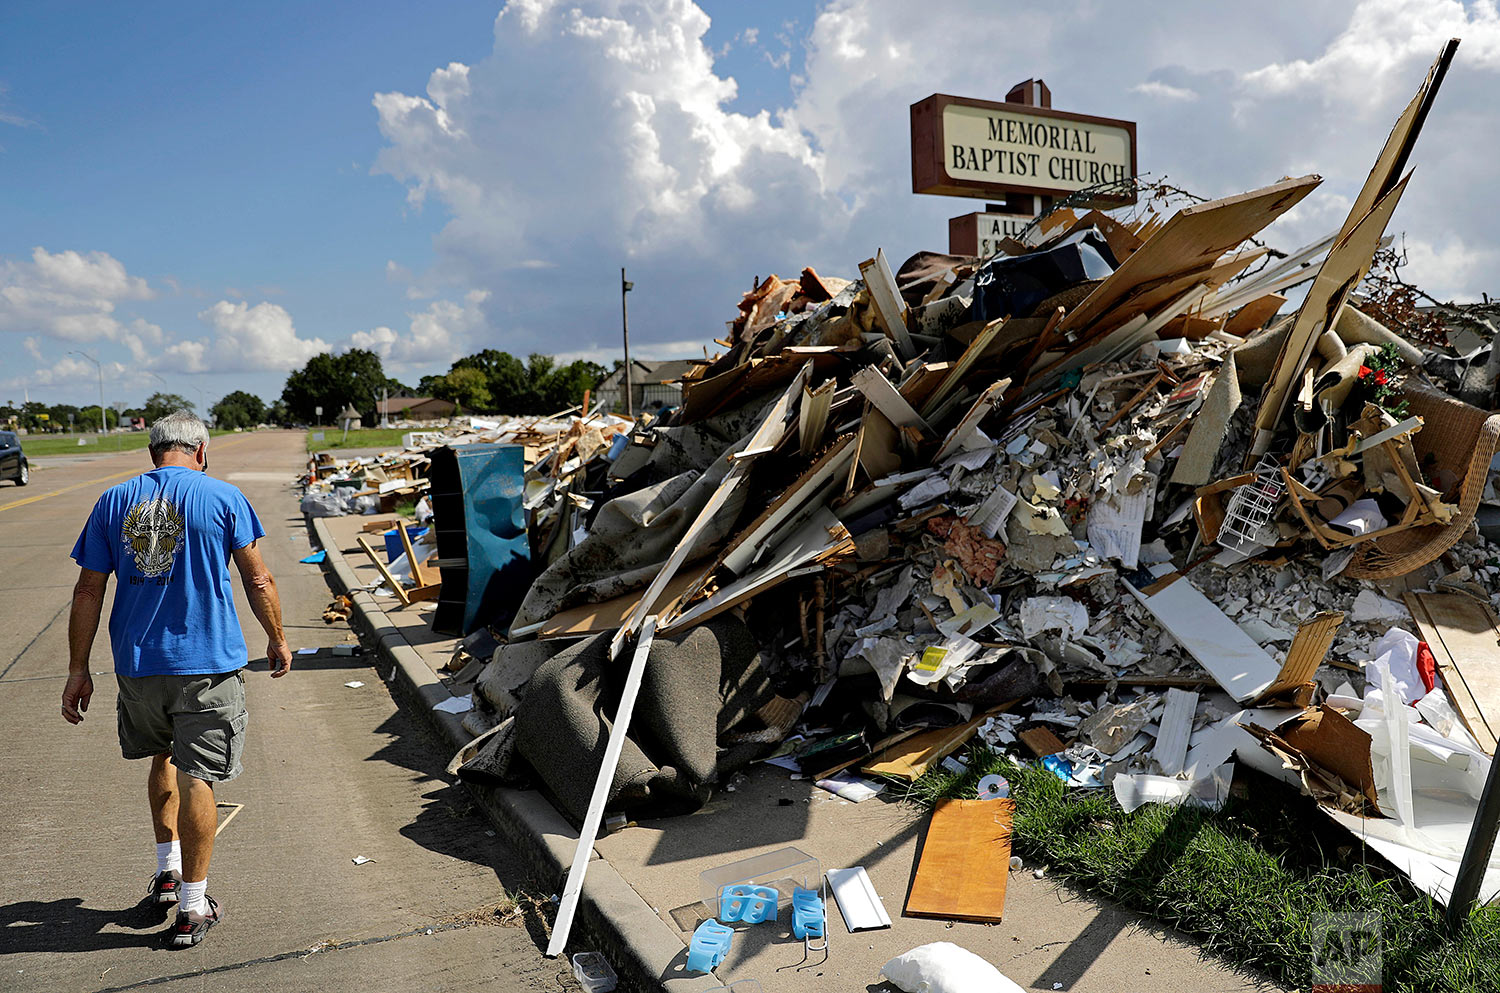 """Wayne Christopher walks by a pile of debris outside the church he'd attended his whole life damaged from Hurricane Harvey in Port Arthur, Texas, Monday, Sept. 25, 2017. He and his wife had come here every Sunday and every Wednesday for more than four decades. This church is where he was baptized, where he met his high school sweetheart, then married her 46 years ago. """"We have a lot of memories here. This is my home. I've been here all my life,"""" said Christopher. (AP Photo/David Goldman)"""